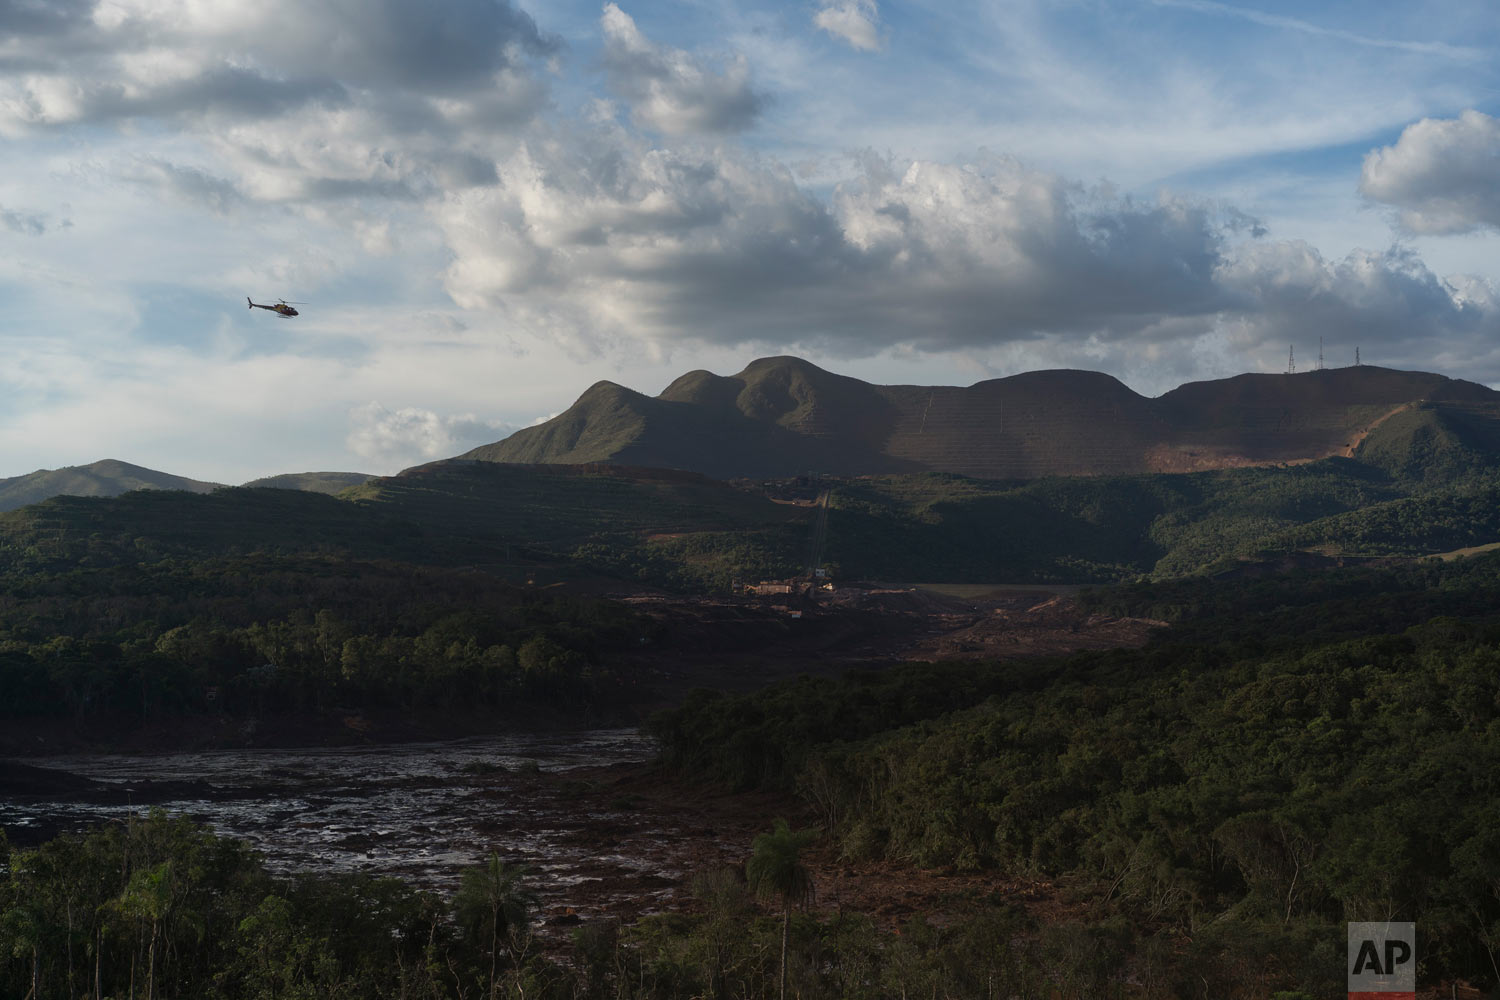 Members of the rescue operation fly over the site where a Vale dam collapsed two days prior in Brumadinho, Brazil, Jan. 27, 2019. (AP Photo/Leo Correa)